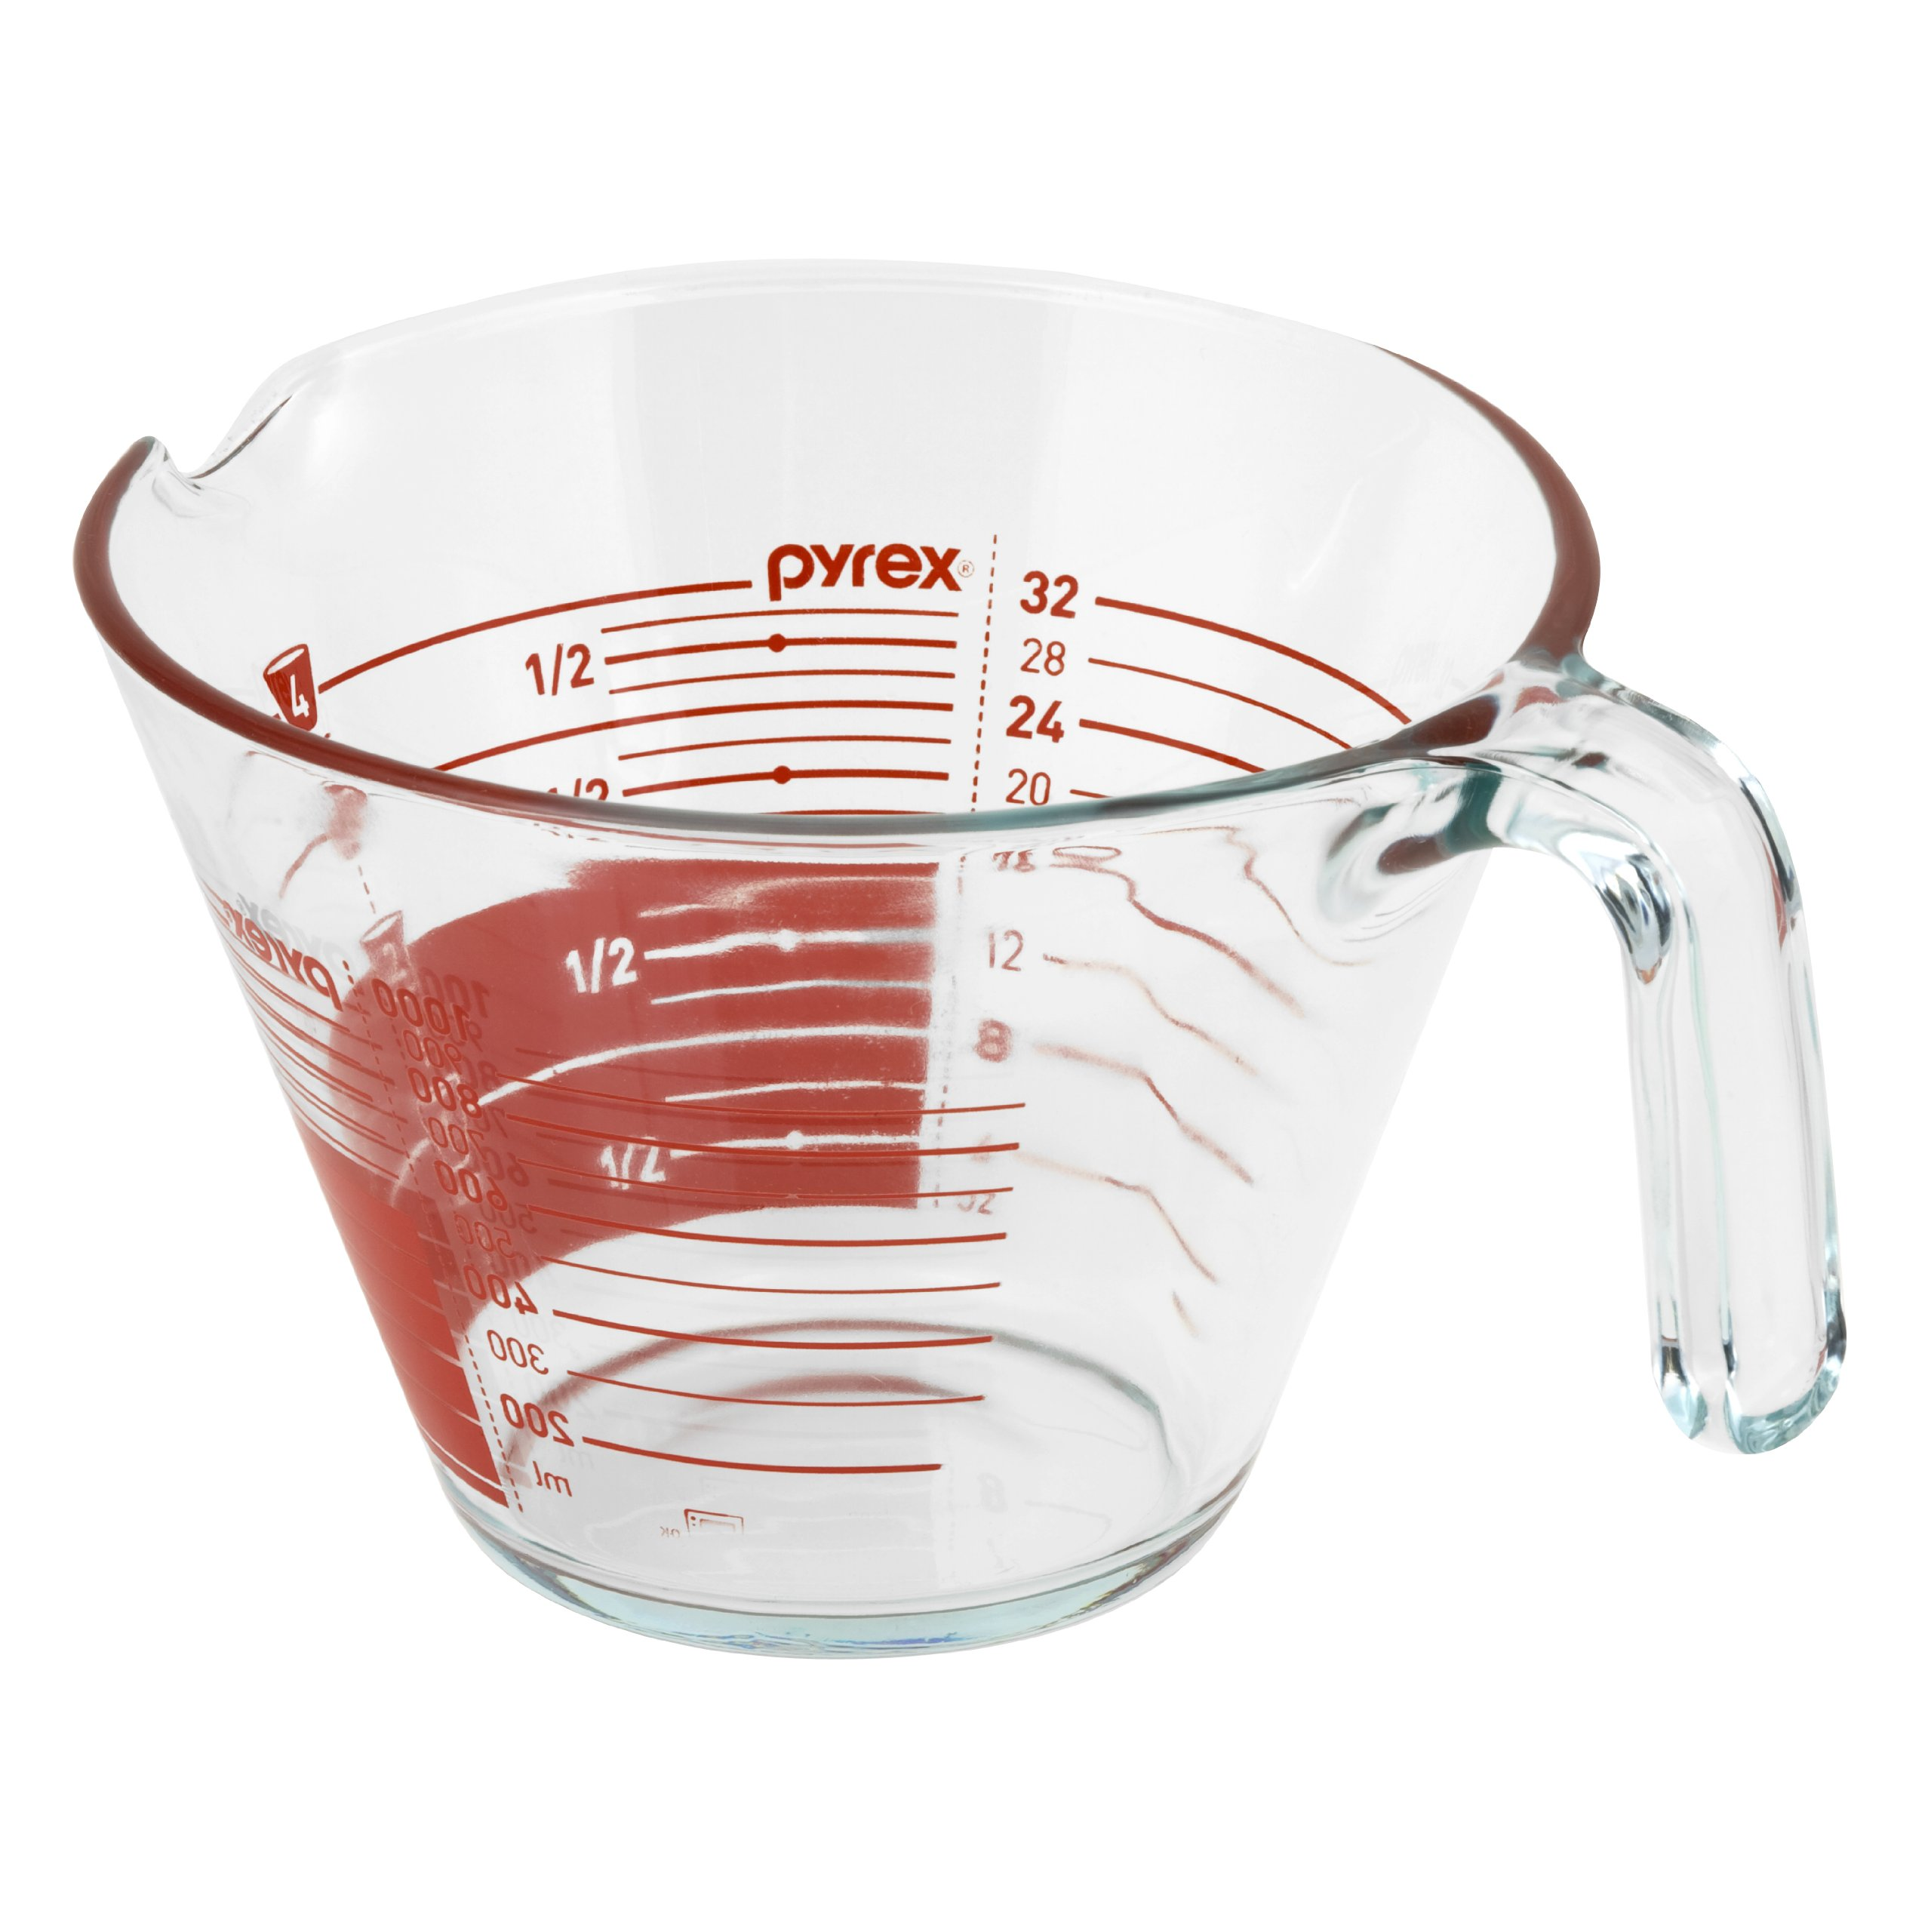 pyrex 4 cup glass measuring cup read from above graphics 691166998395 ebay. Black Bedroom Furniture Sets. Home Design Ideas